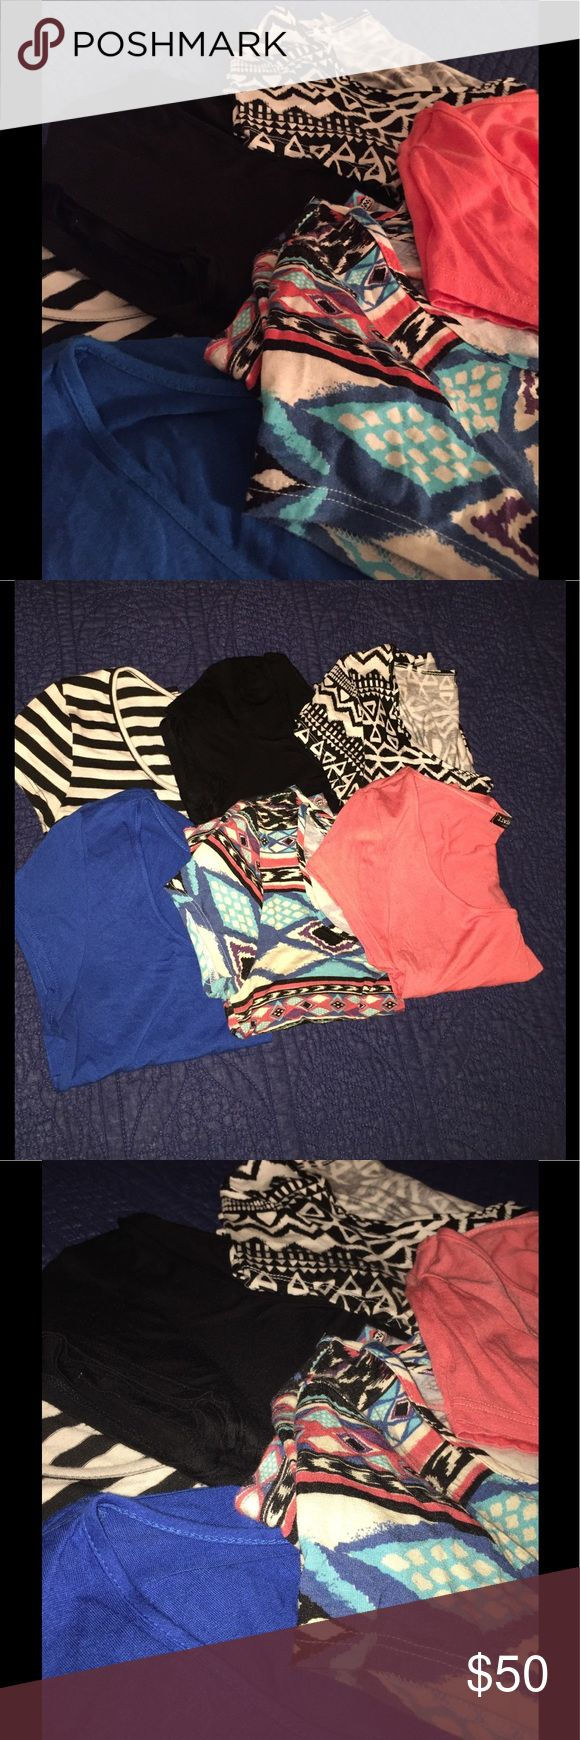 """WEEKEND SALE!! Assorted """"Living Doll"""" Crop Tops All size medium. Price is for all or $10 each. Black and white stripes, black, black and white tribal, blue, multicolored tribal, peach/orange color. Living Doll Tops Crop Tops"""